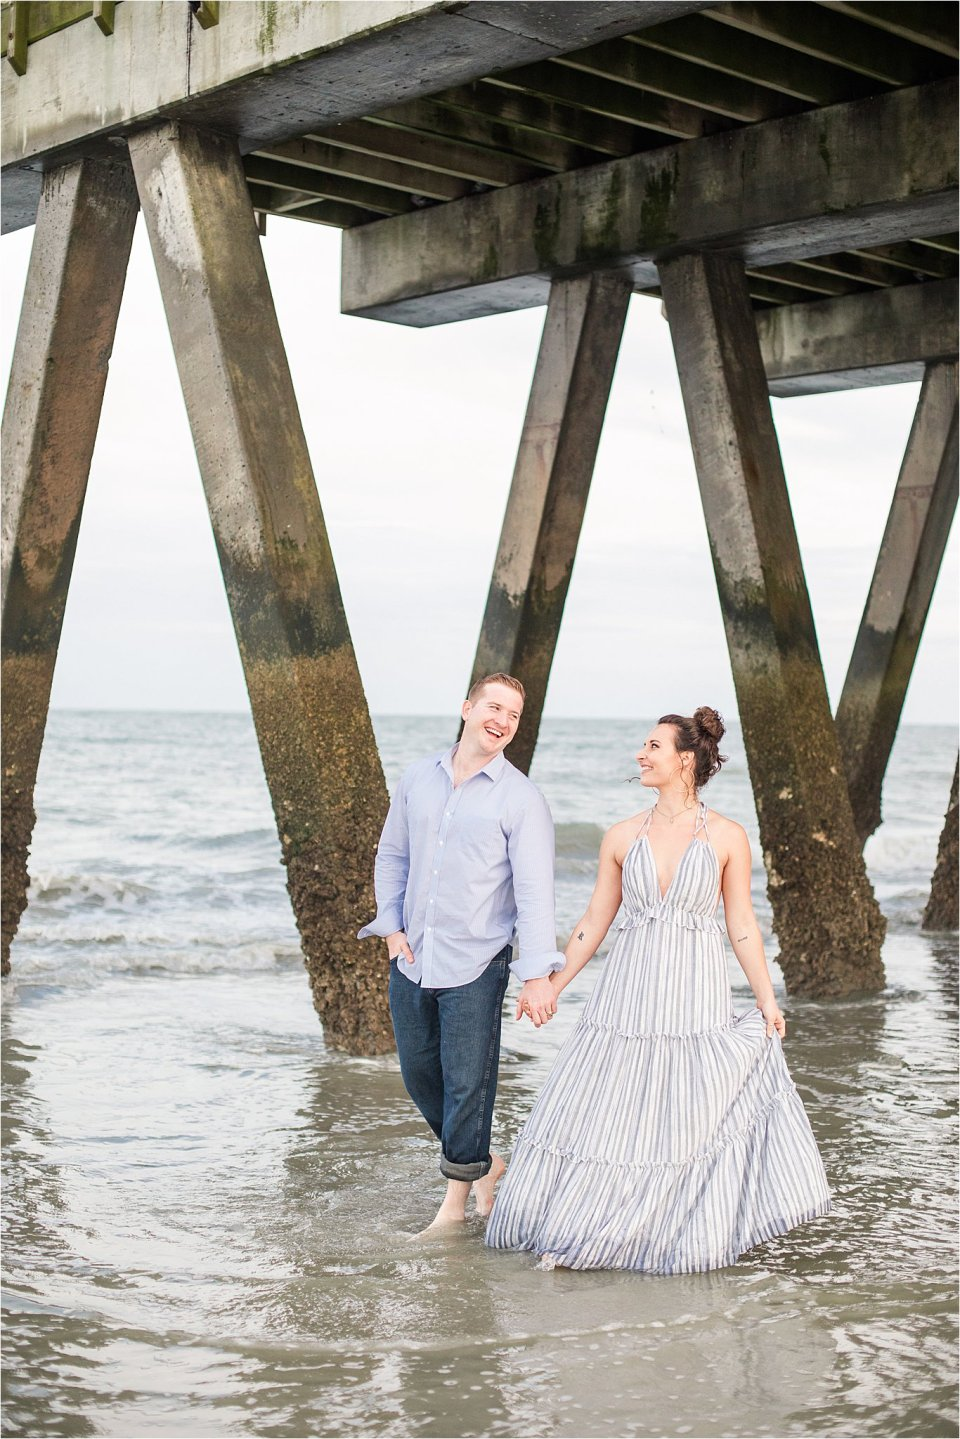 Tybee island engagement photography by pier at sunset